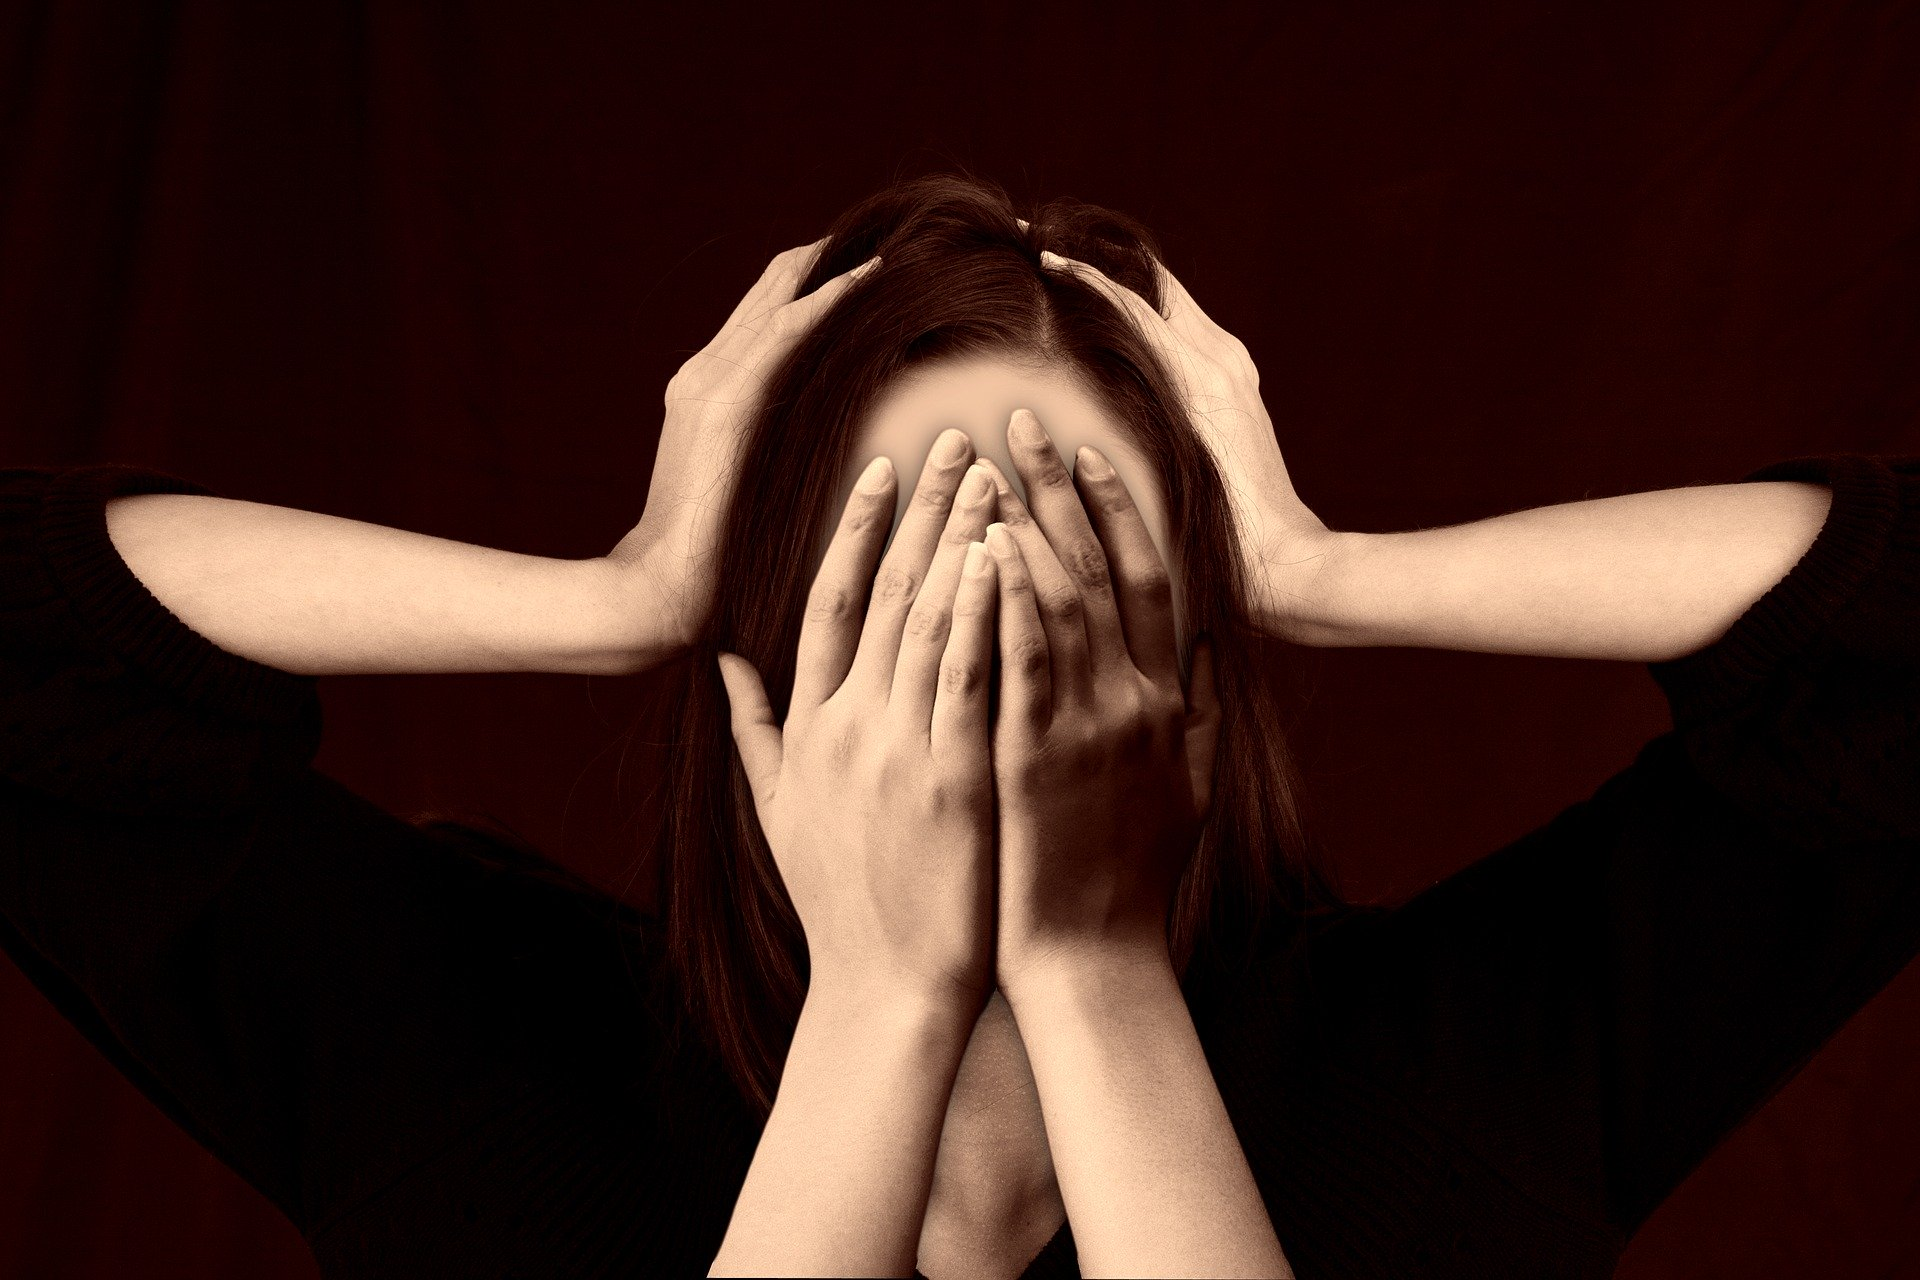 Woman covering ears and other hands covering her face.